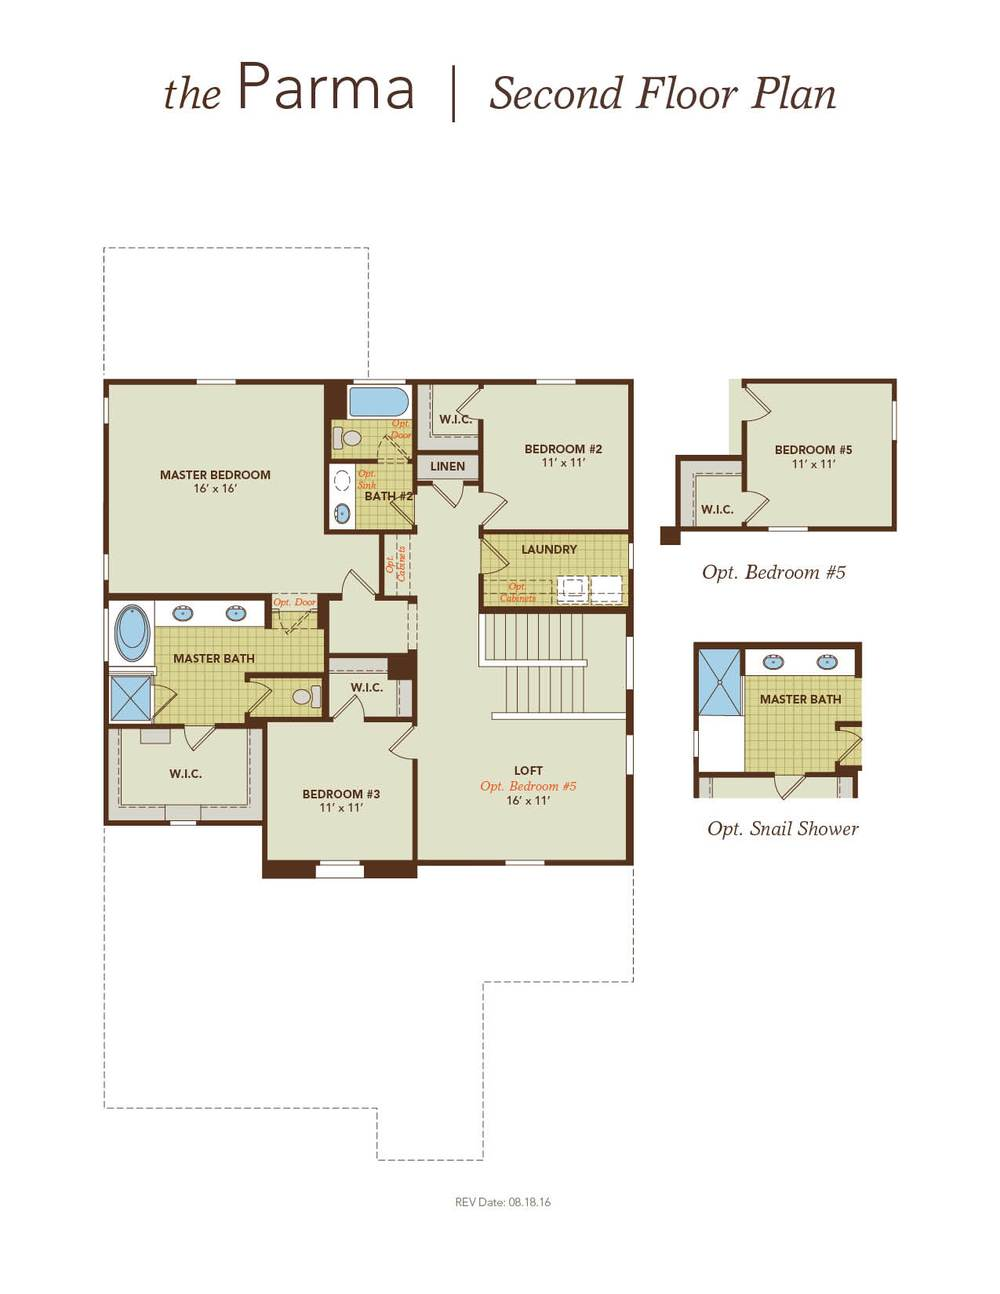 Find floor plans by address cool blue prints cool for Find floor plans by address